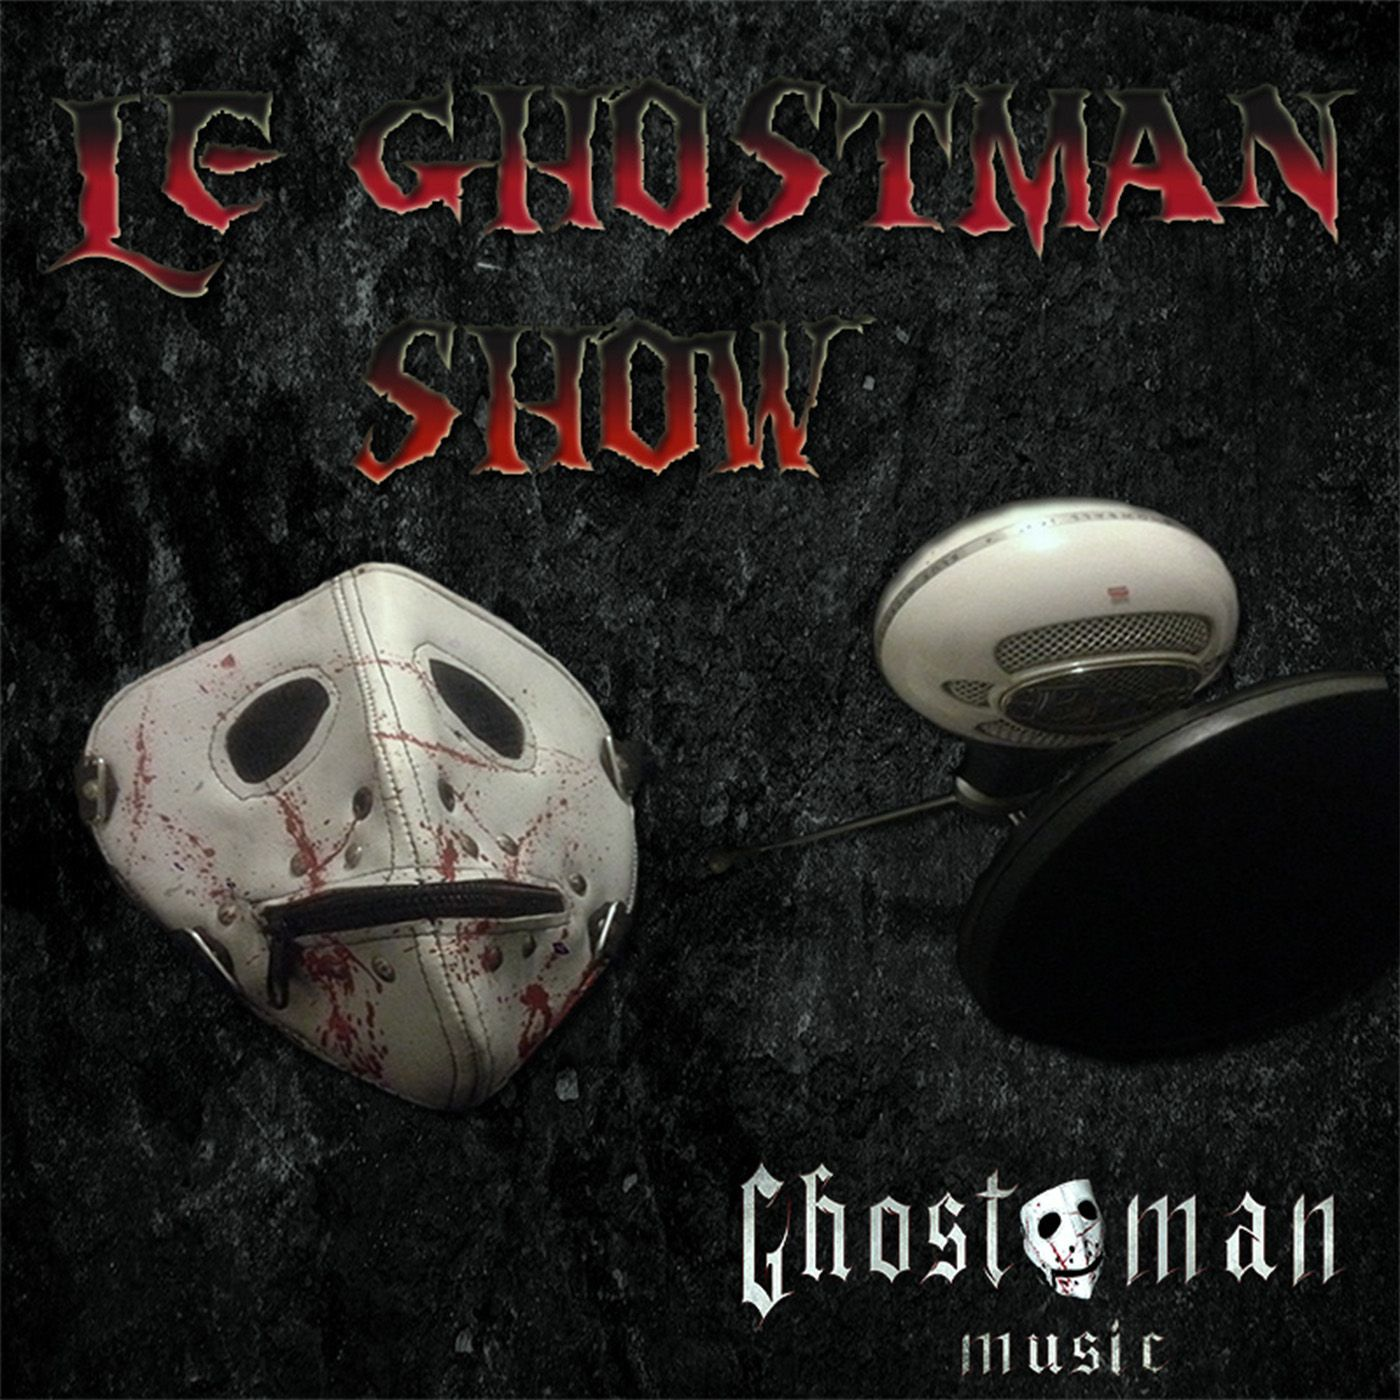 Le Ghostman Show